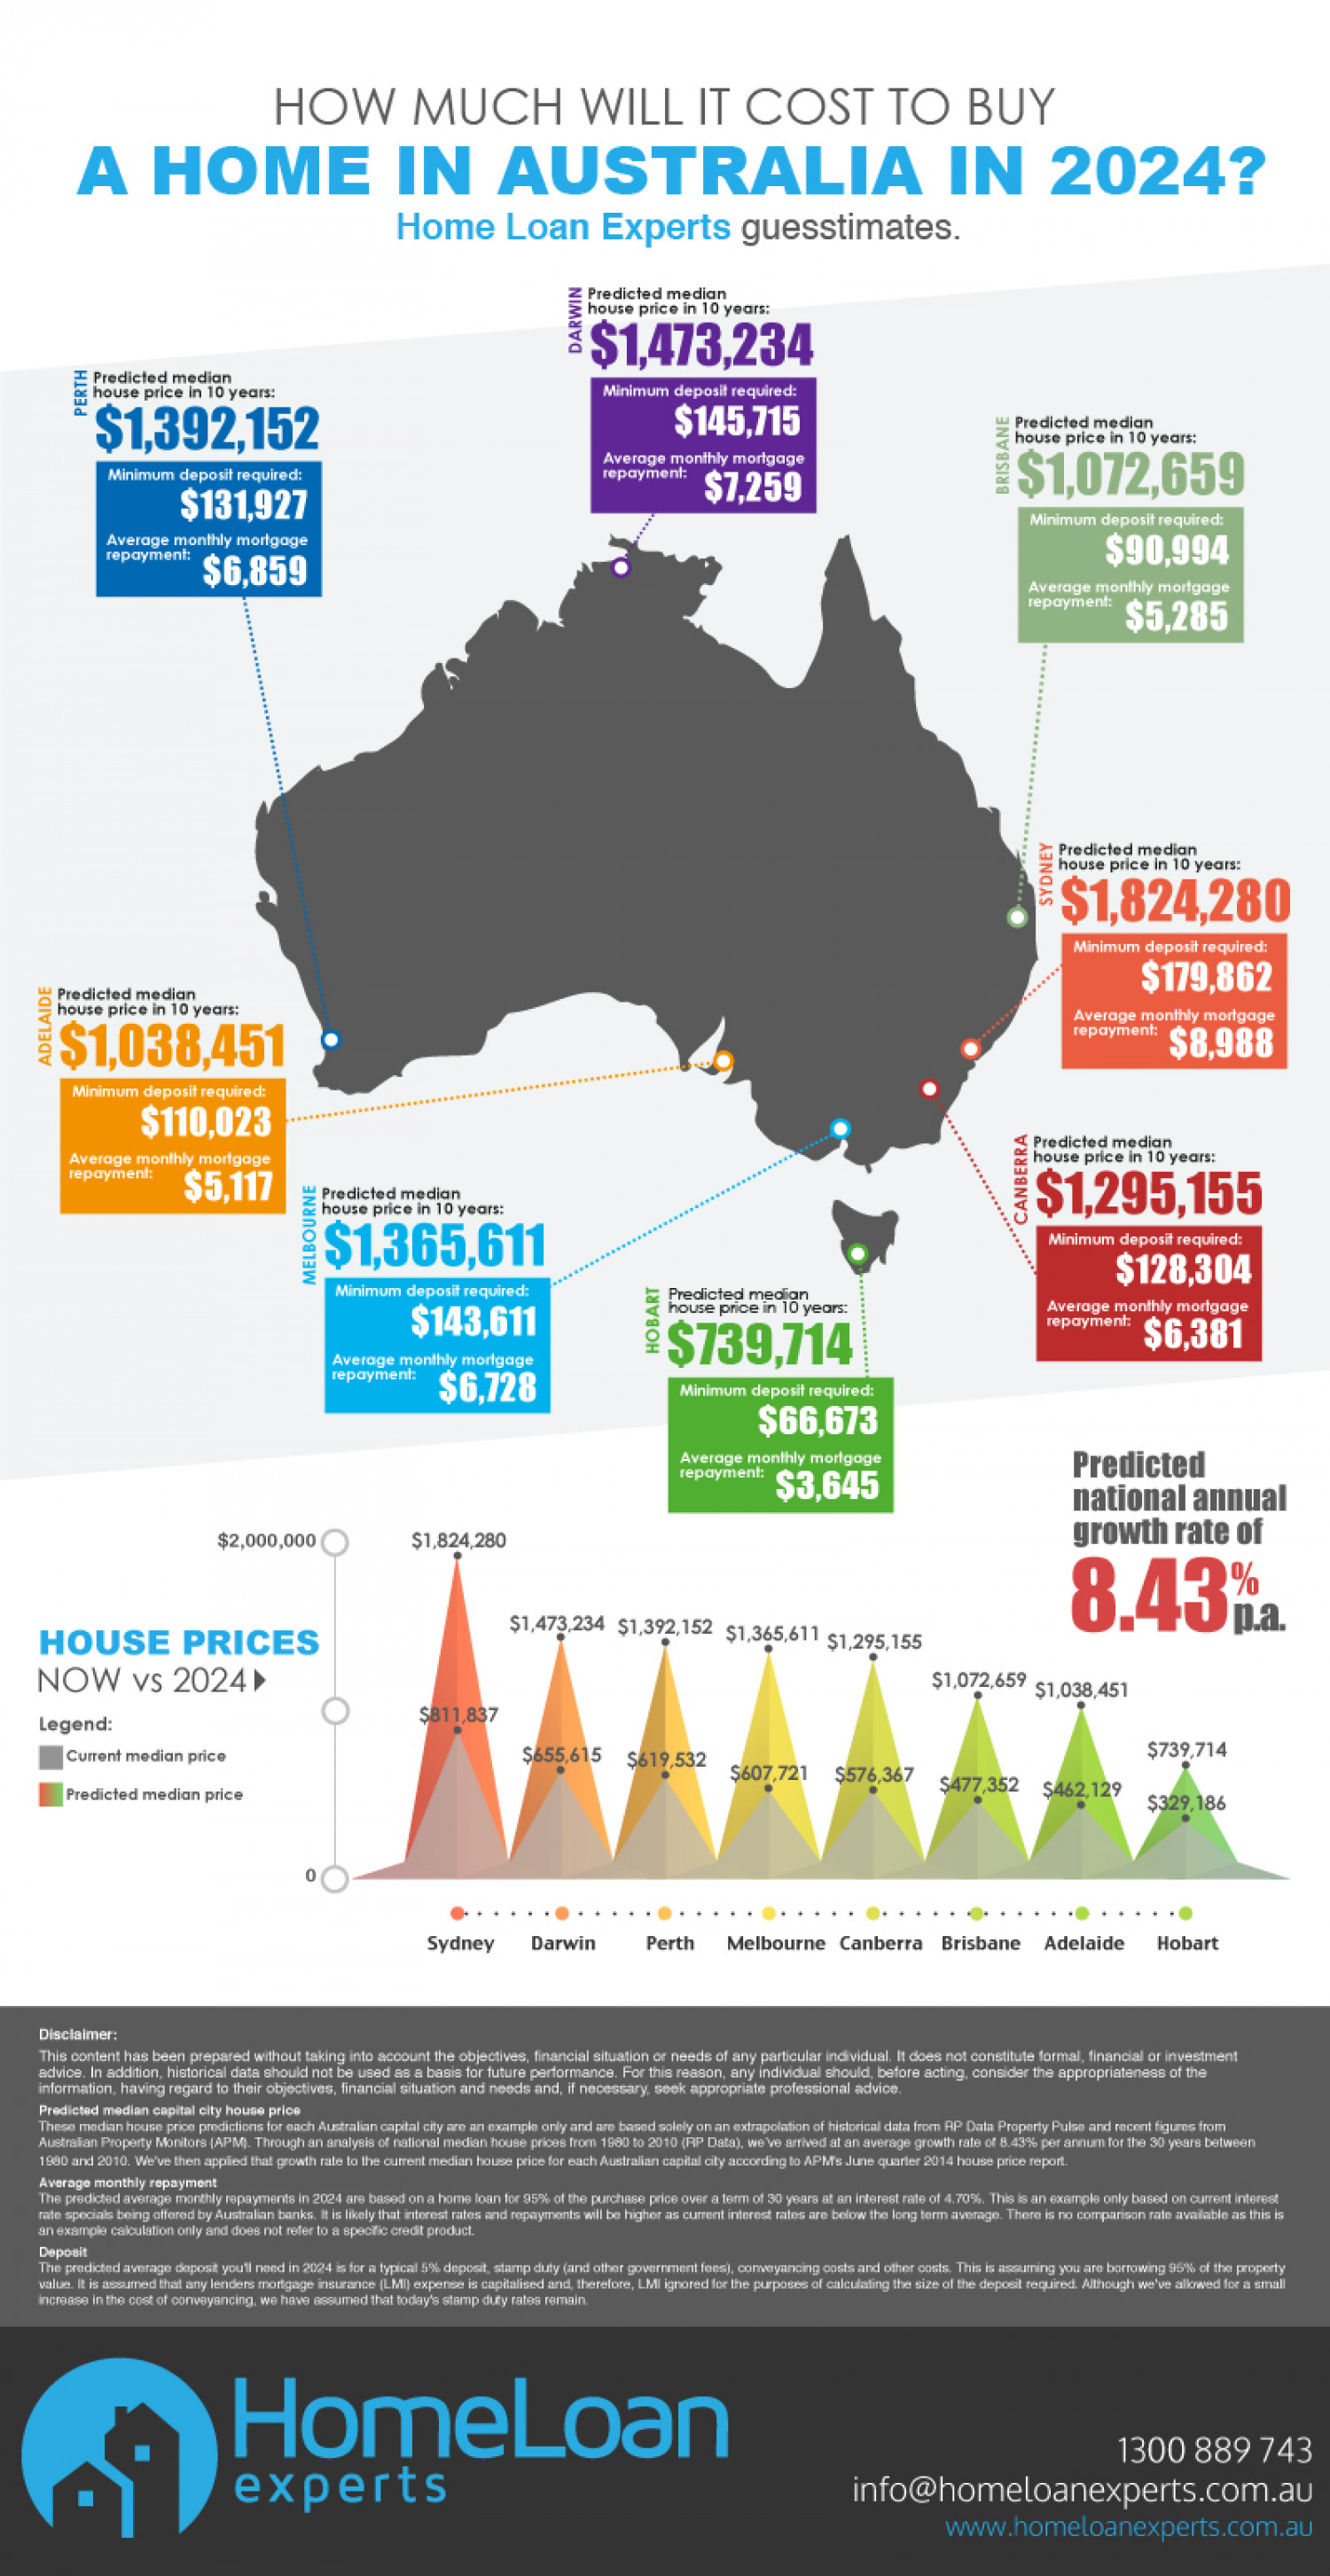 How Much it will Cost to Buy a Home in Australia in 2024 Infographic